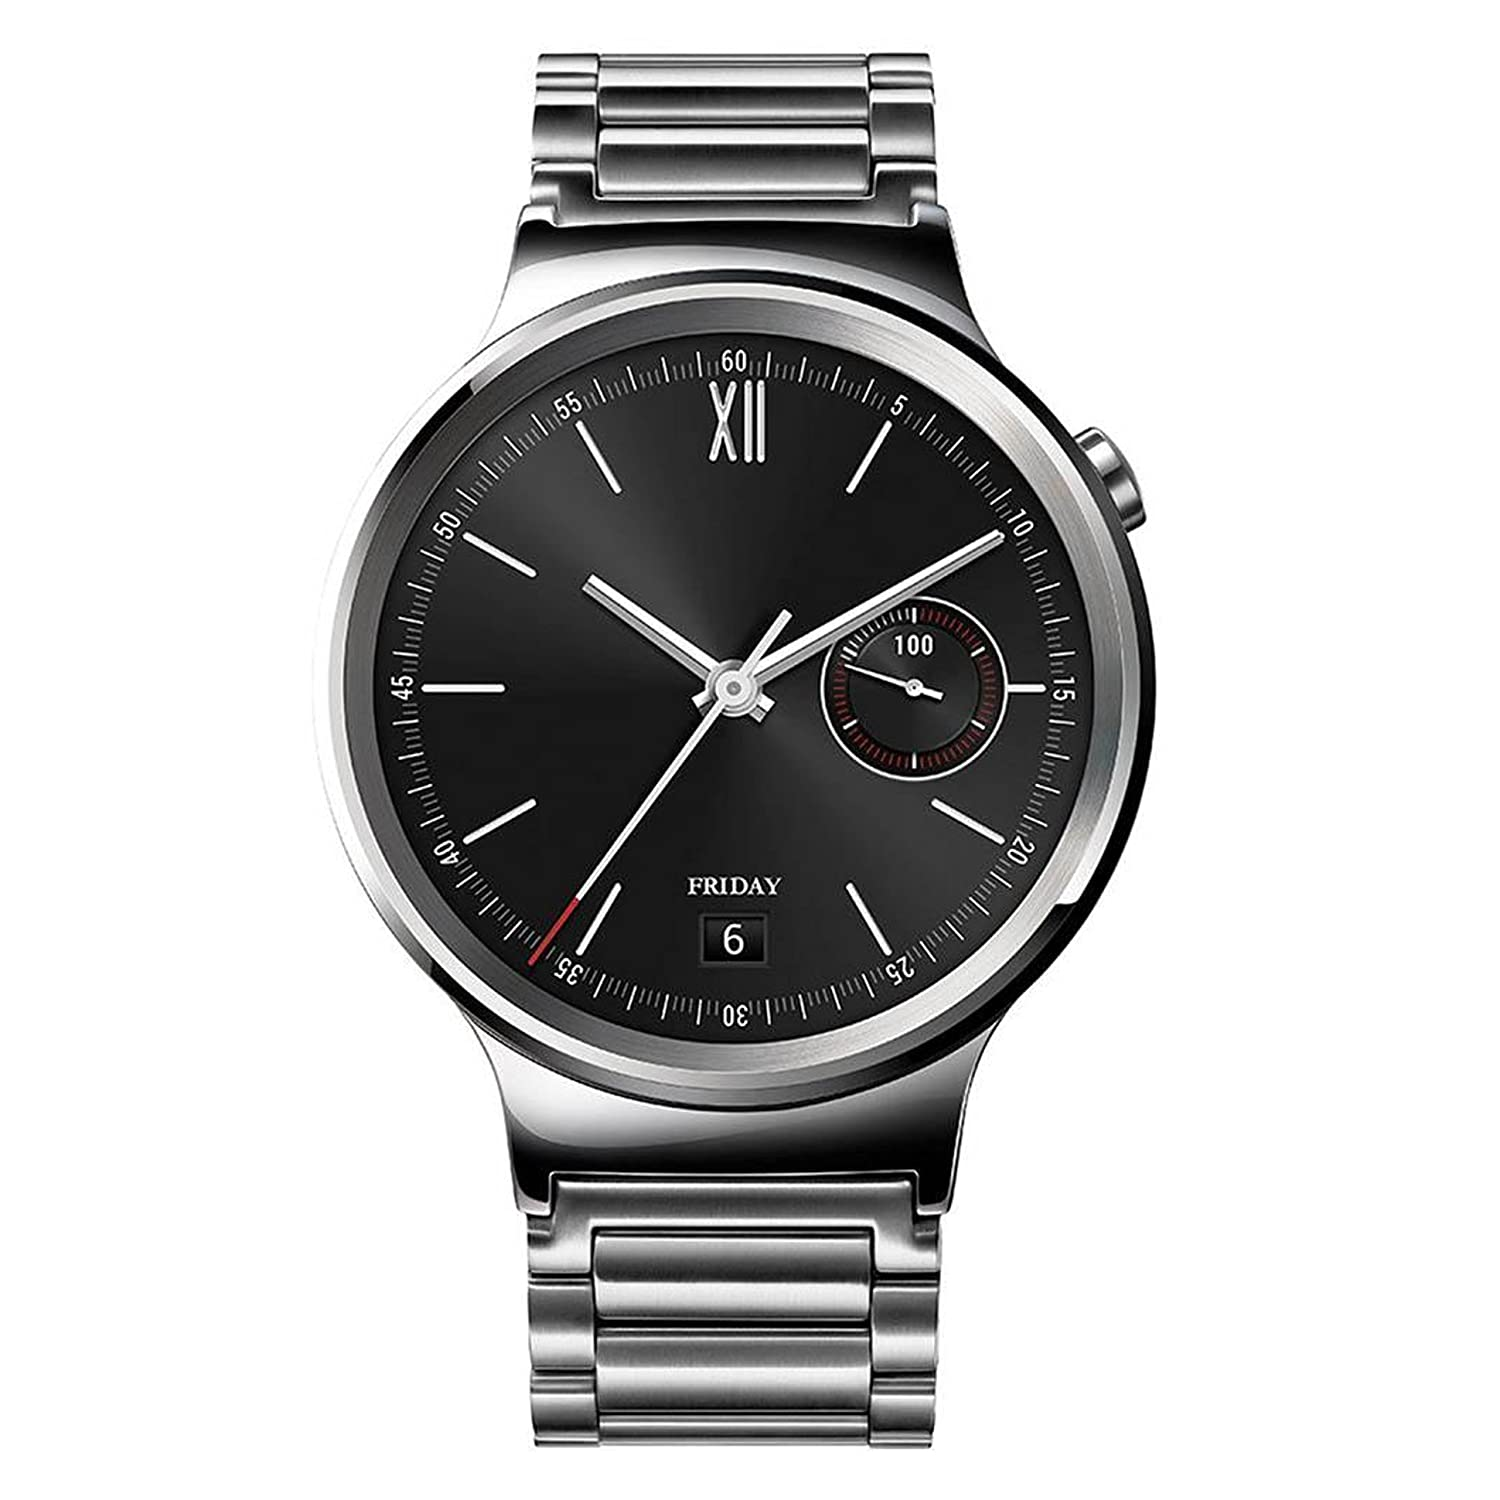 Huawei Watch Stainless Steel with Stainless Steel Link Band (US Warranty)